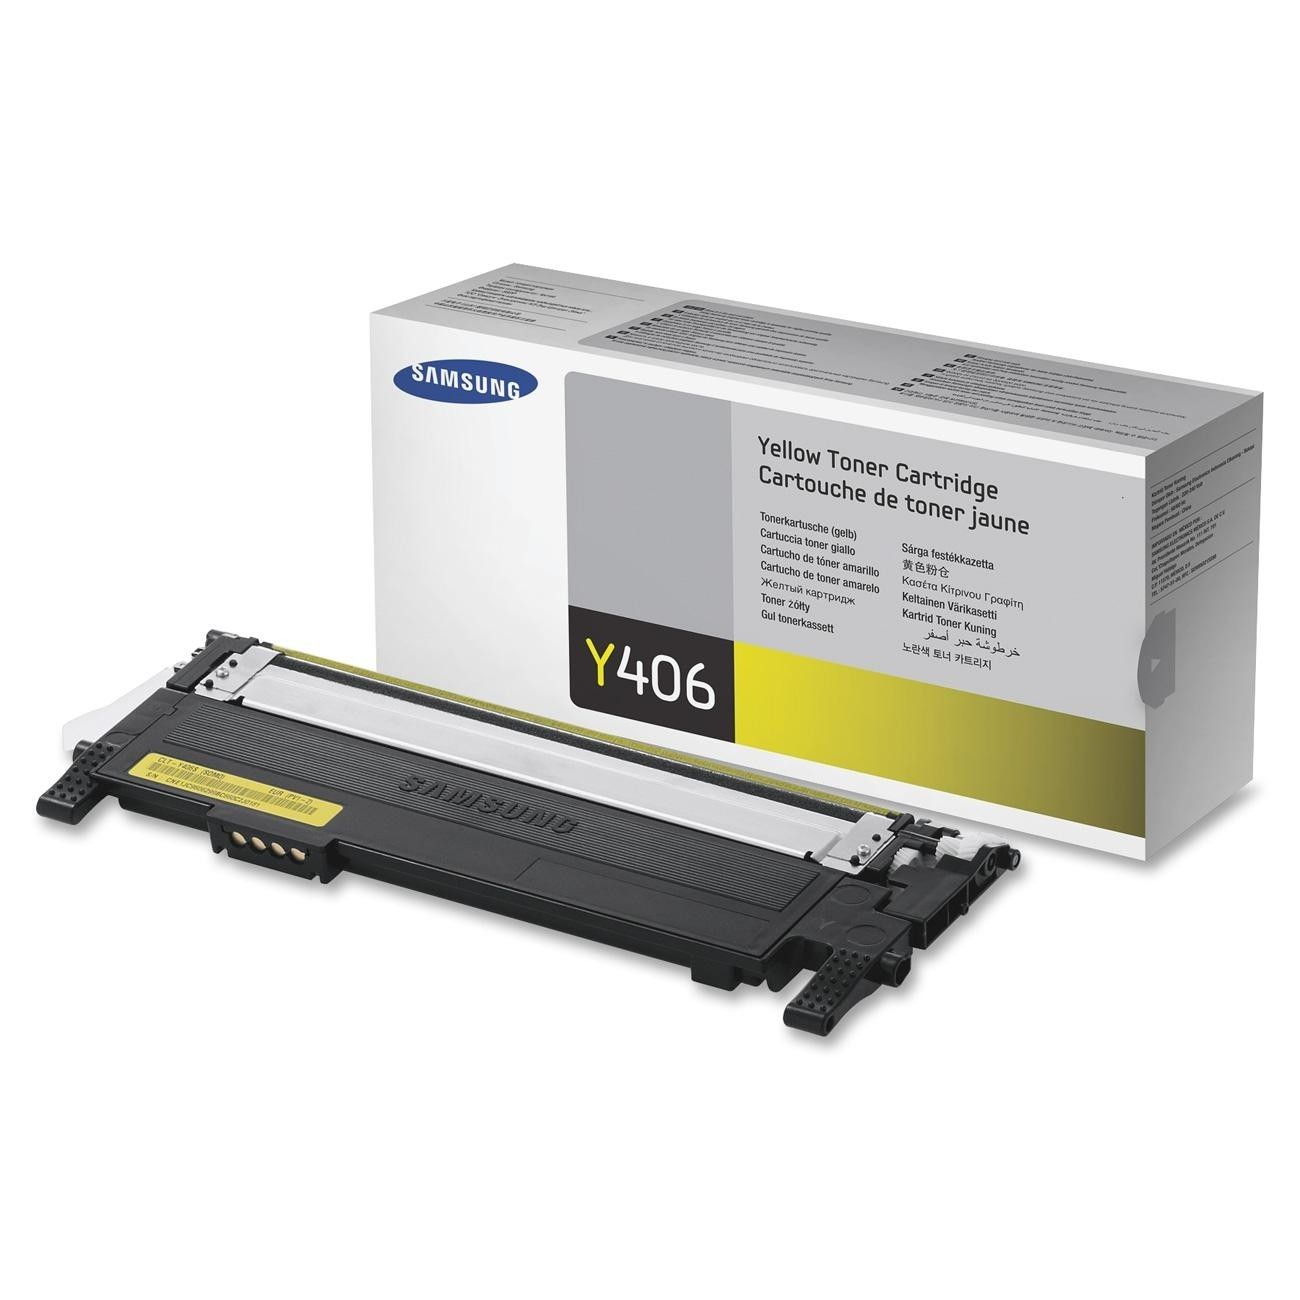 CLTY406S Toner Cartridge, 1000 Page Yield, Yellow